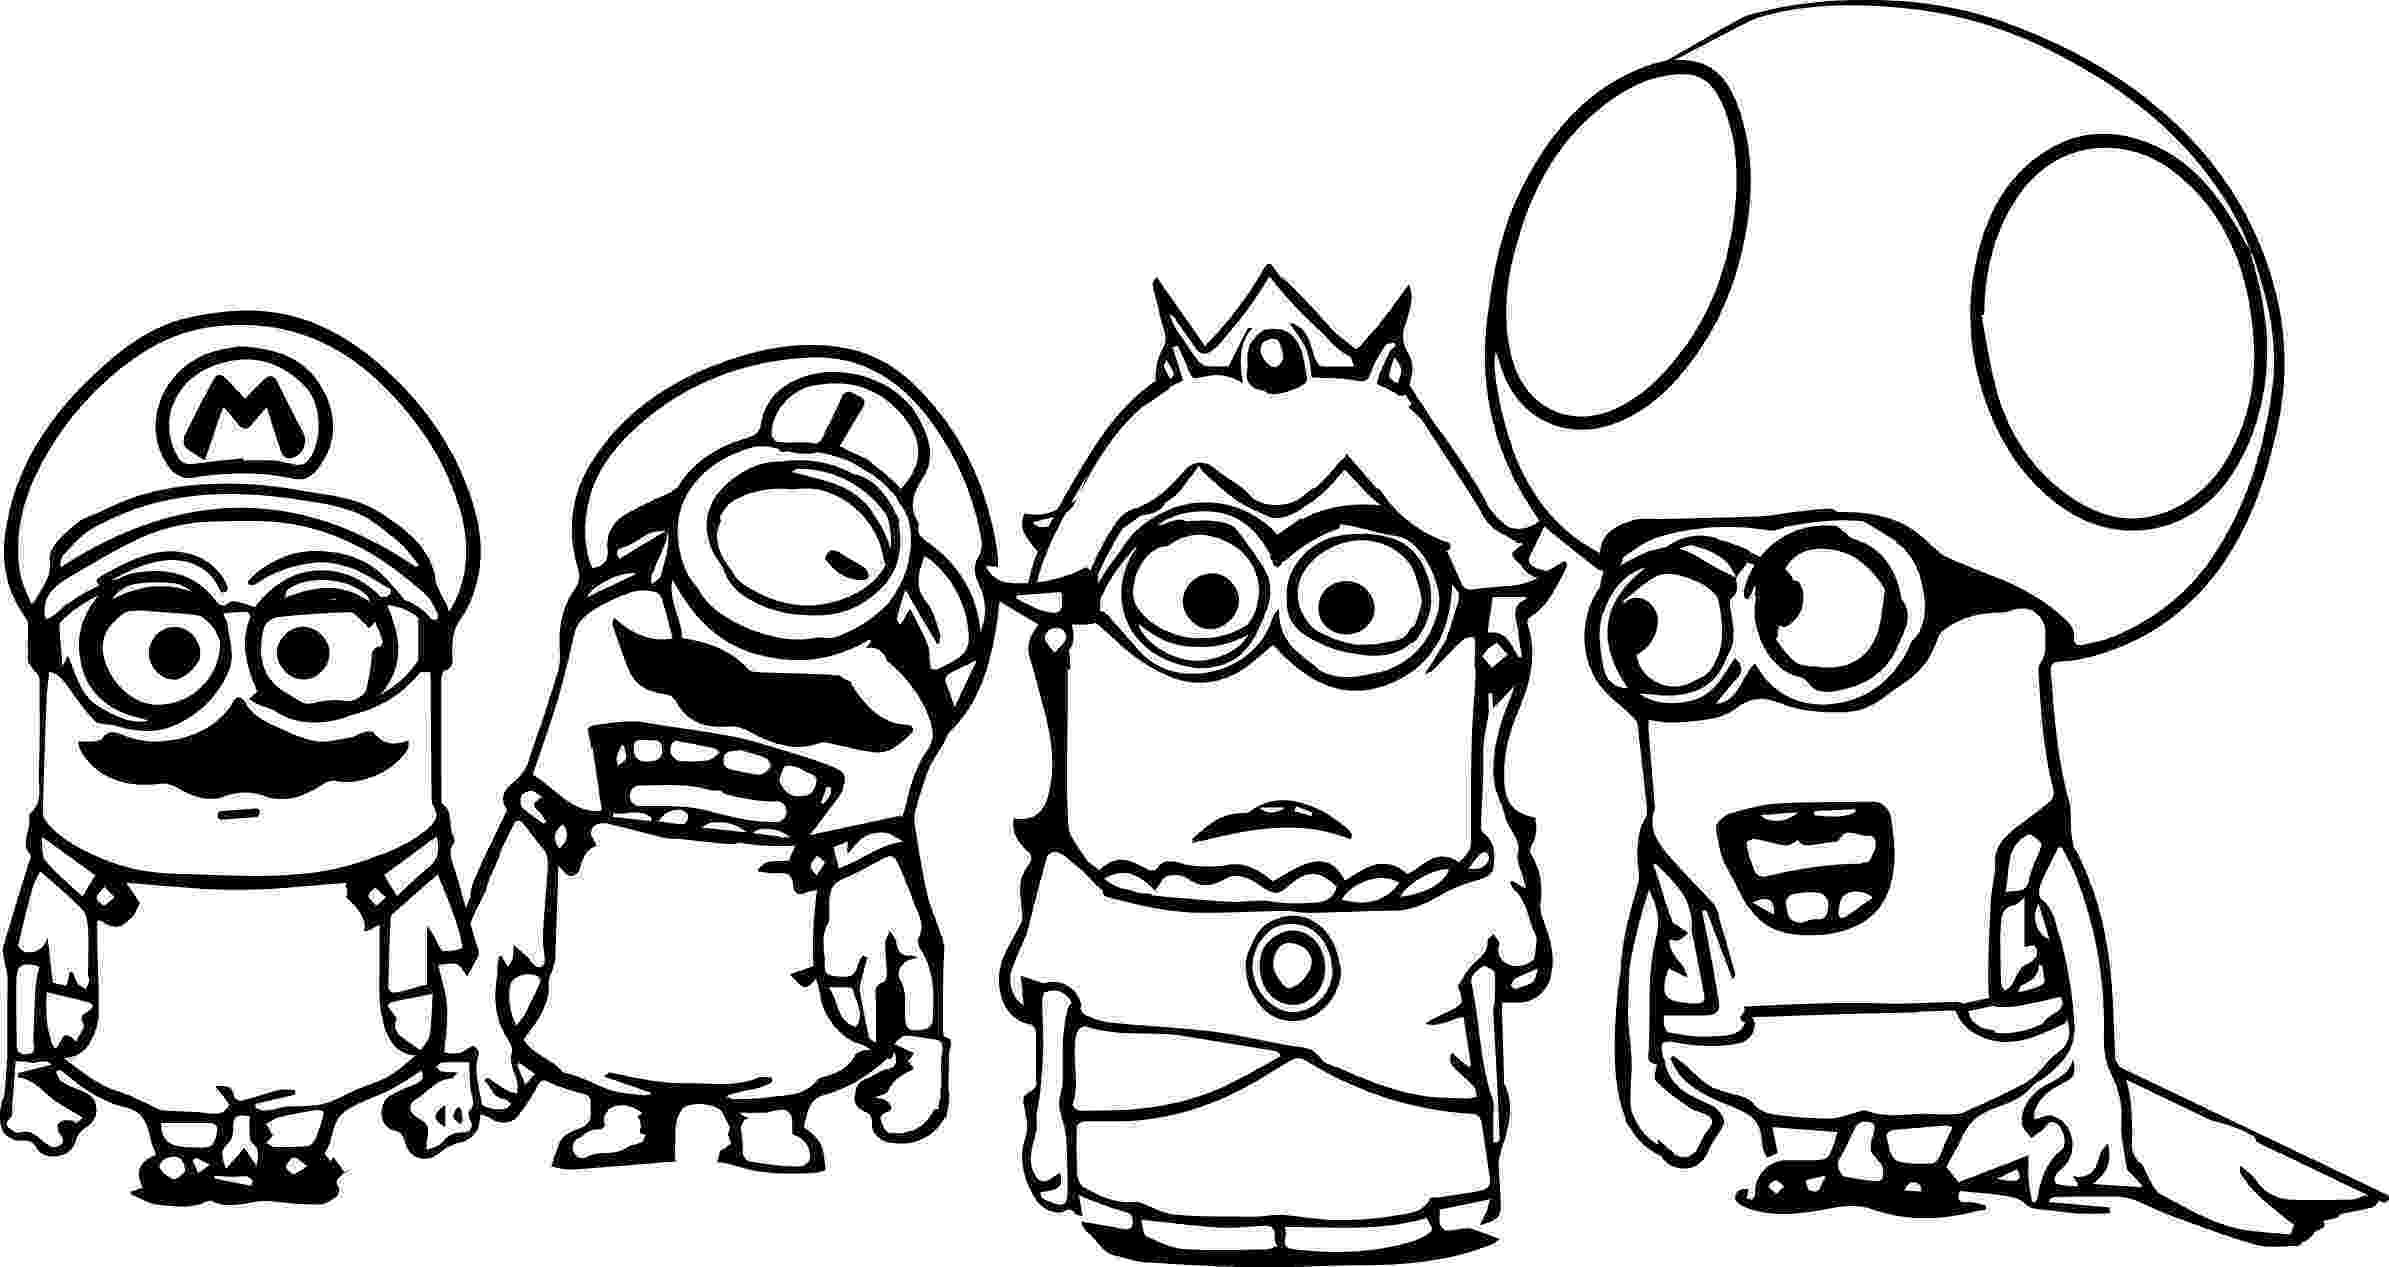 minion pictures to color and print minion coloring pages best coloring pages for kids print minion color pictures to and